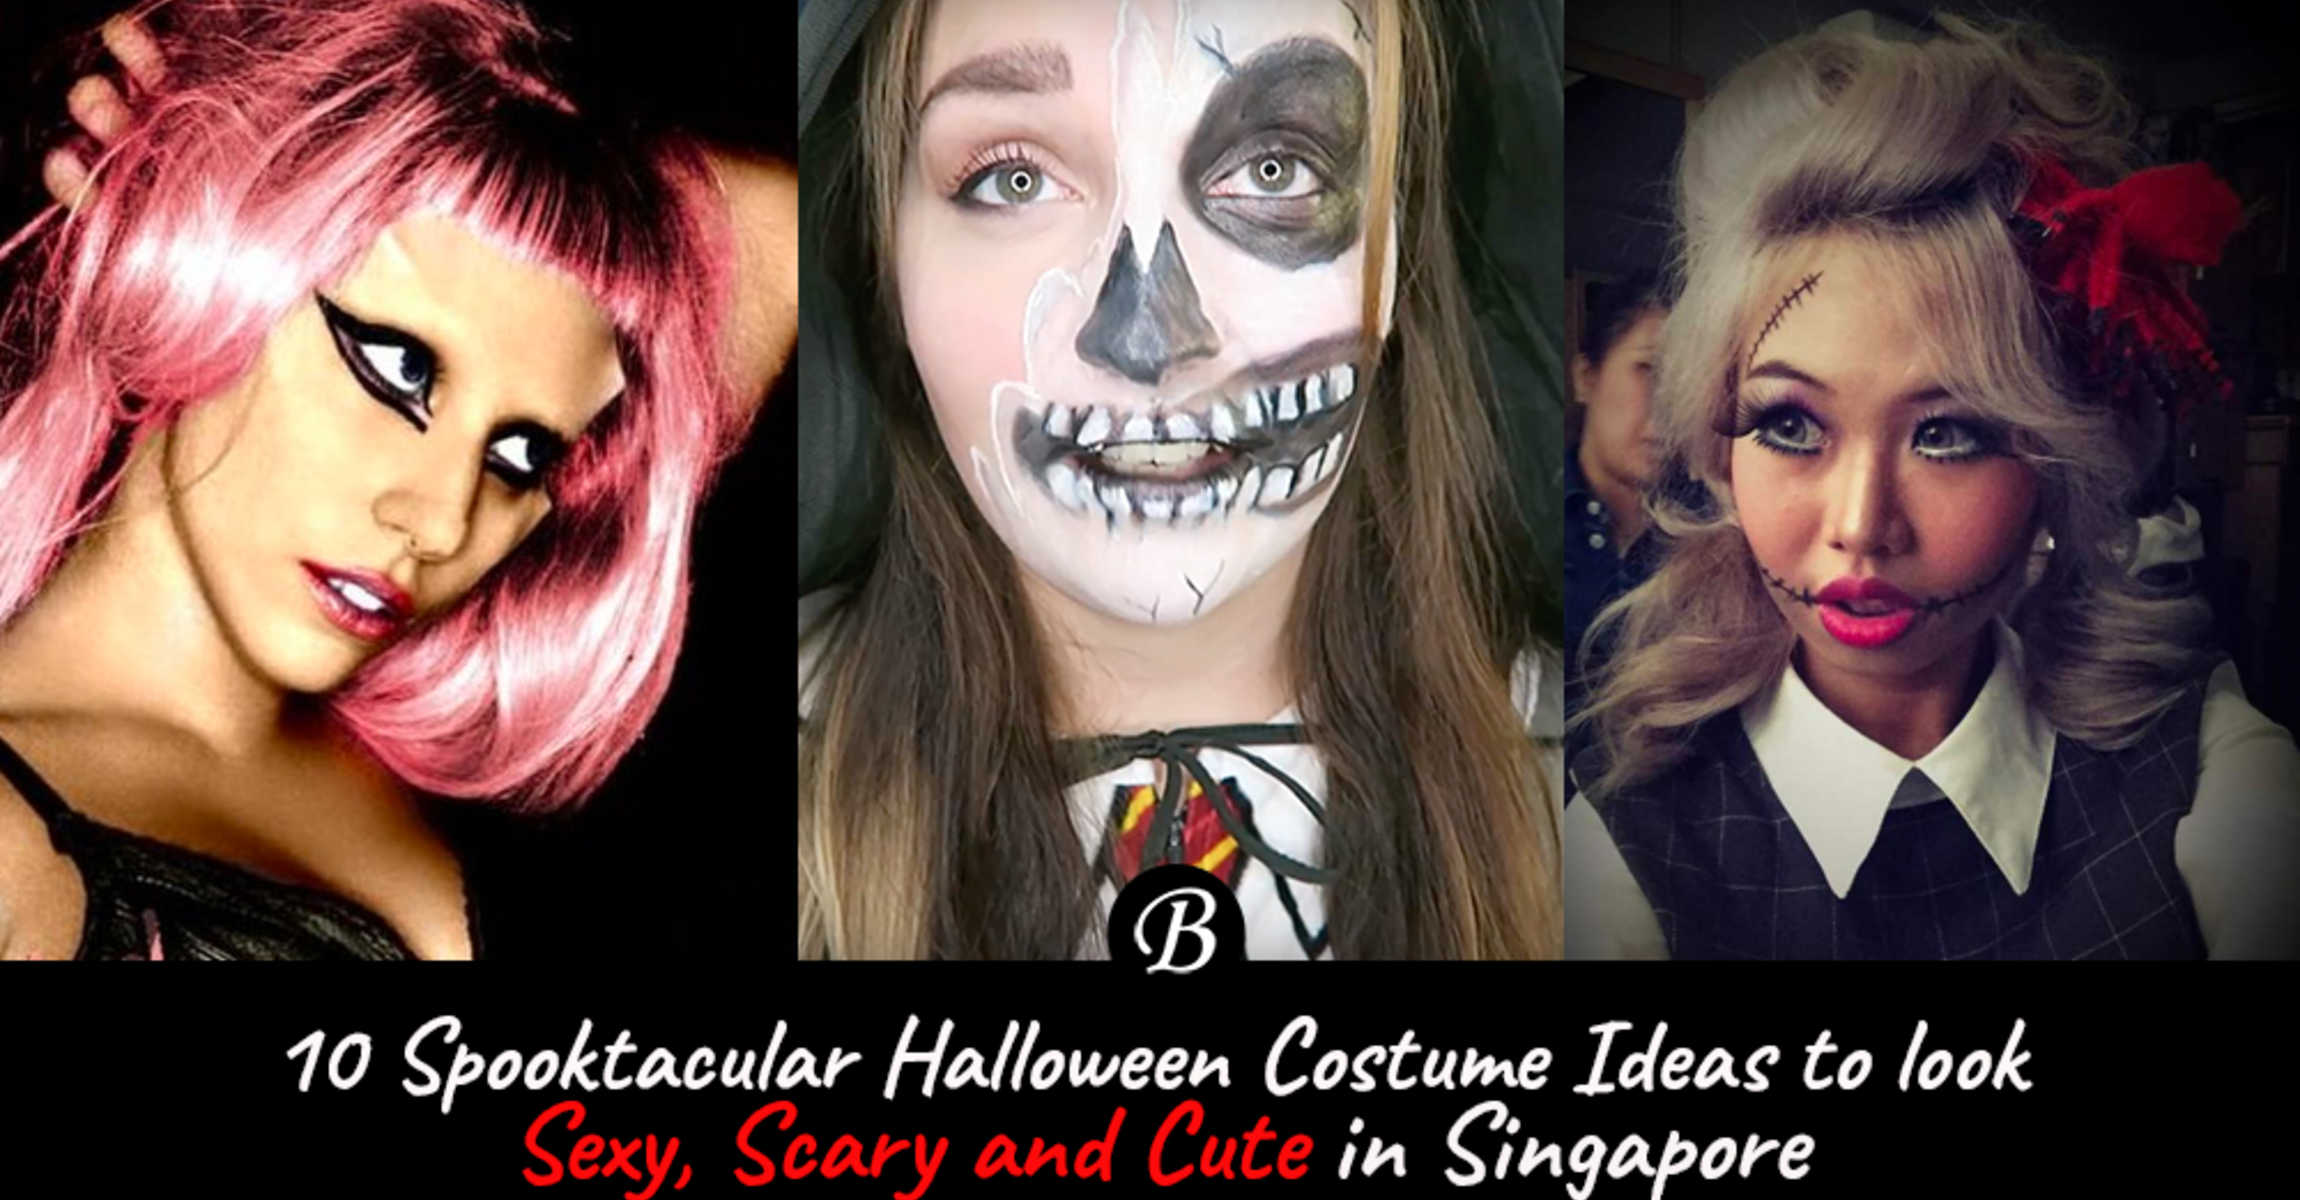 Halloween Looks Scary.Best Halloween Ideas To Look Scary Creepy And Cool In Singapore